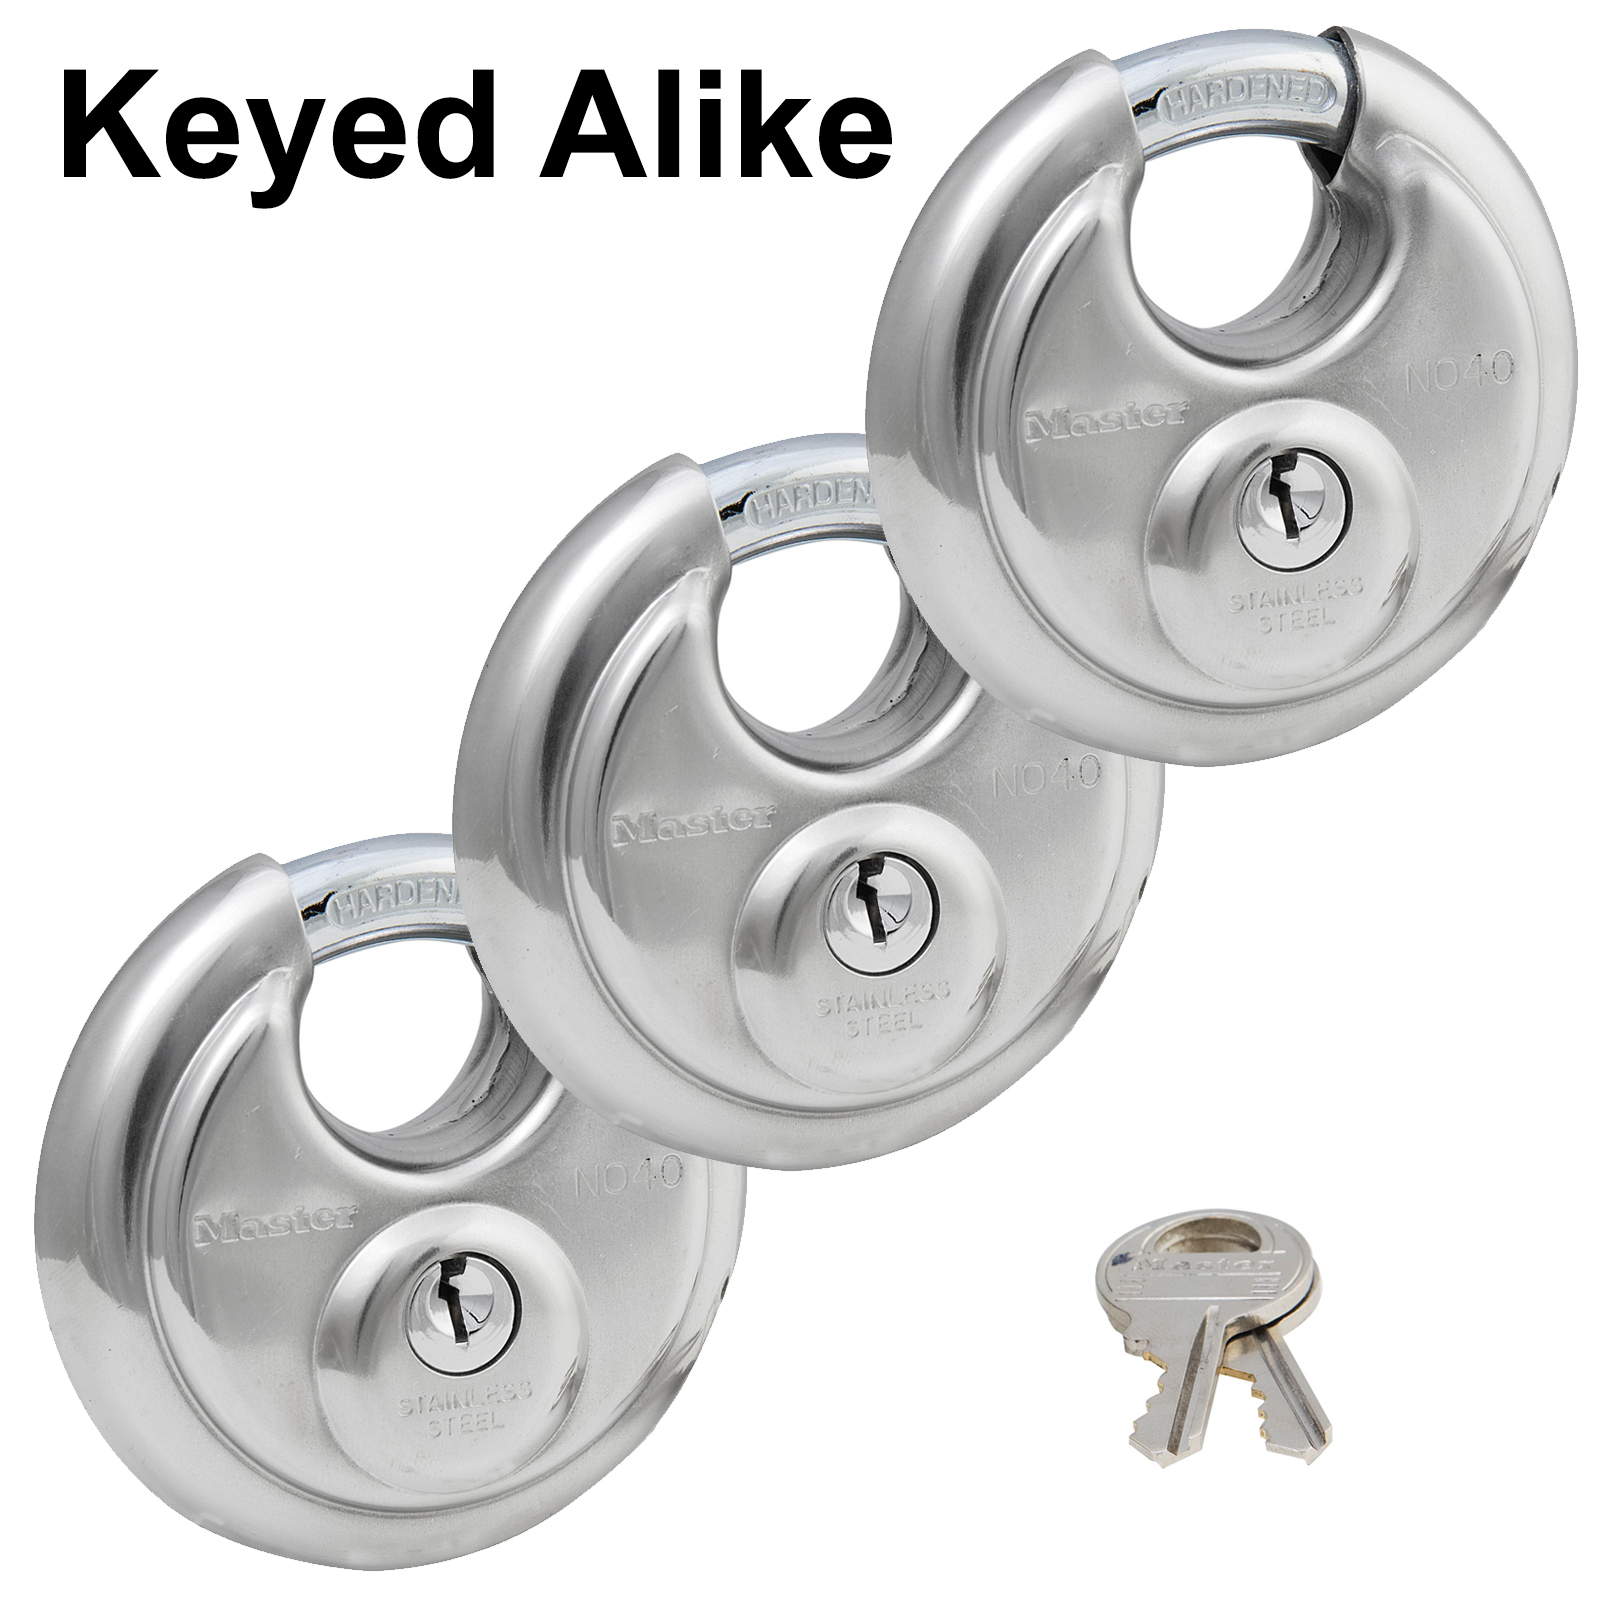 Master Stainless Lock - (3) Keyed Alike Multi Purpose Padlocks 40TRI-3 VALUE PACK